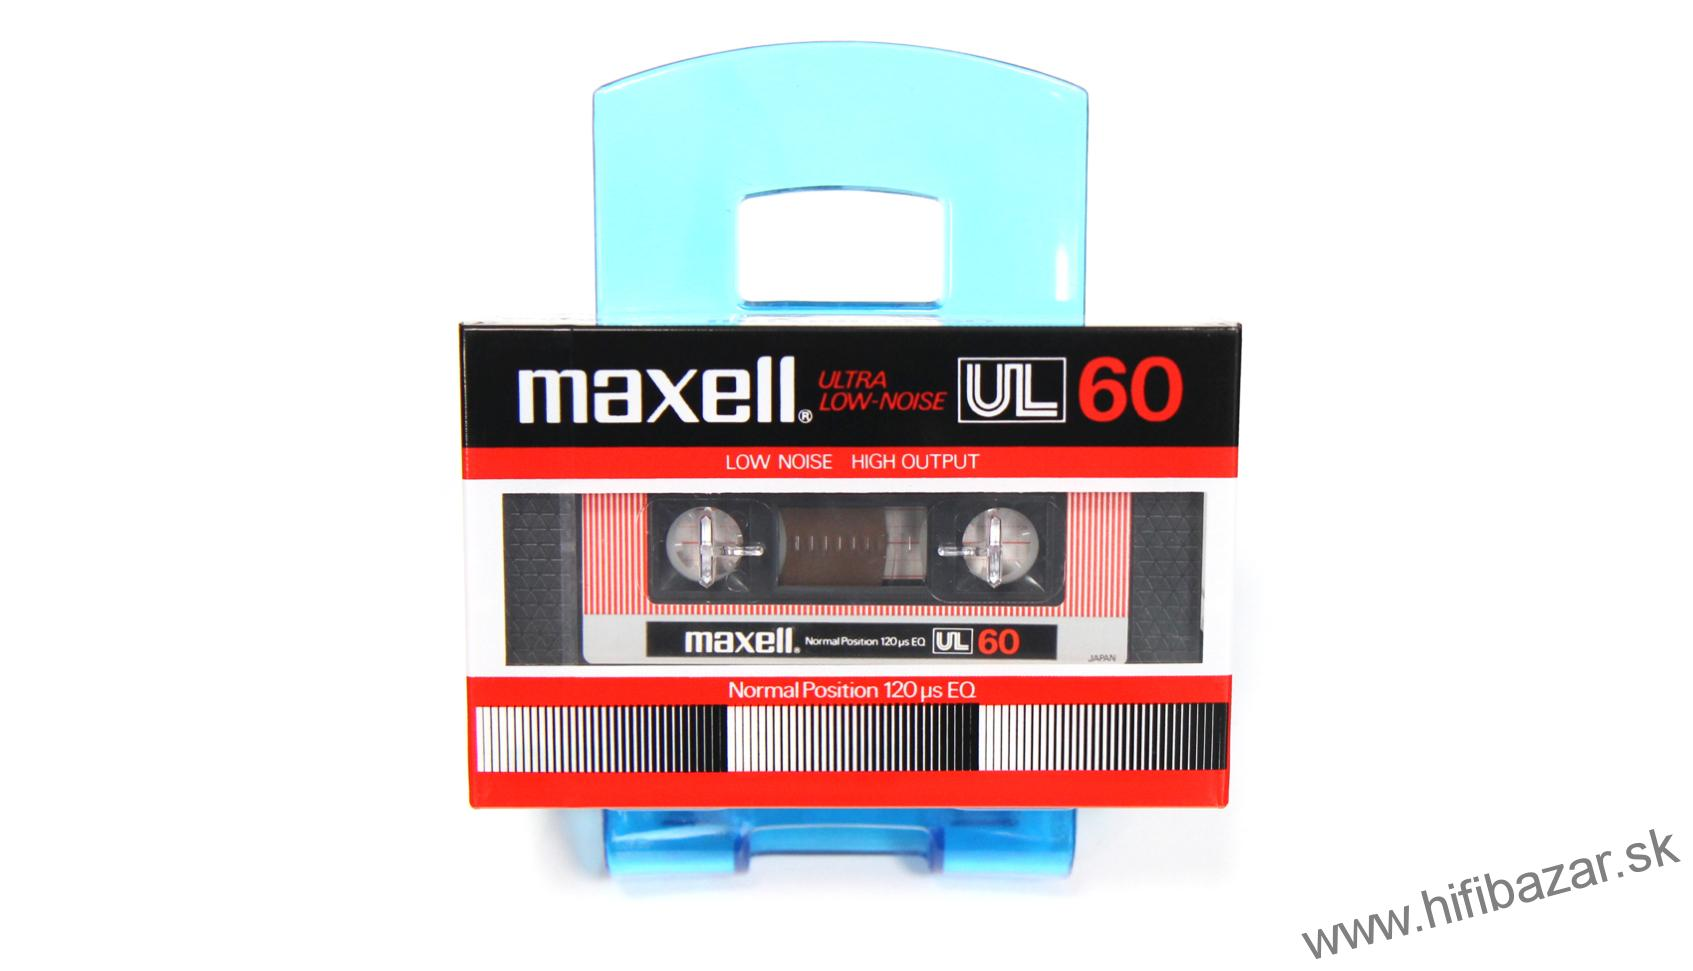 MAXELL UL-60 Japan